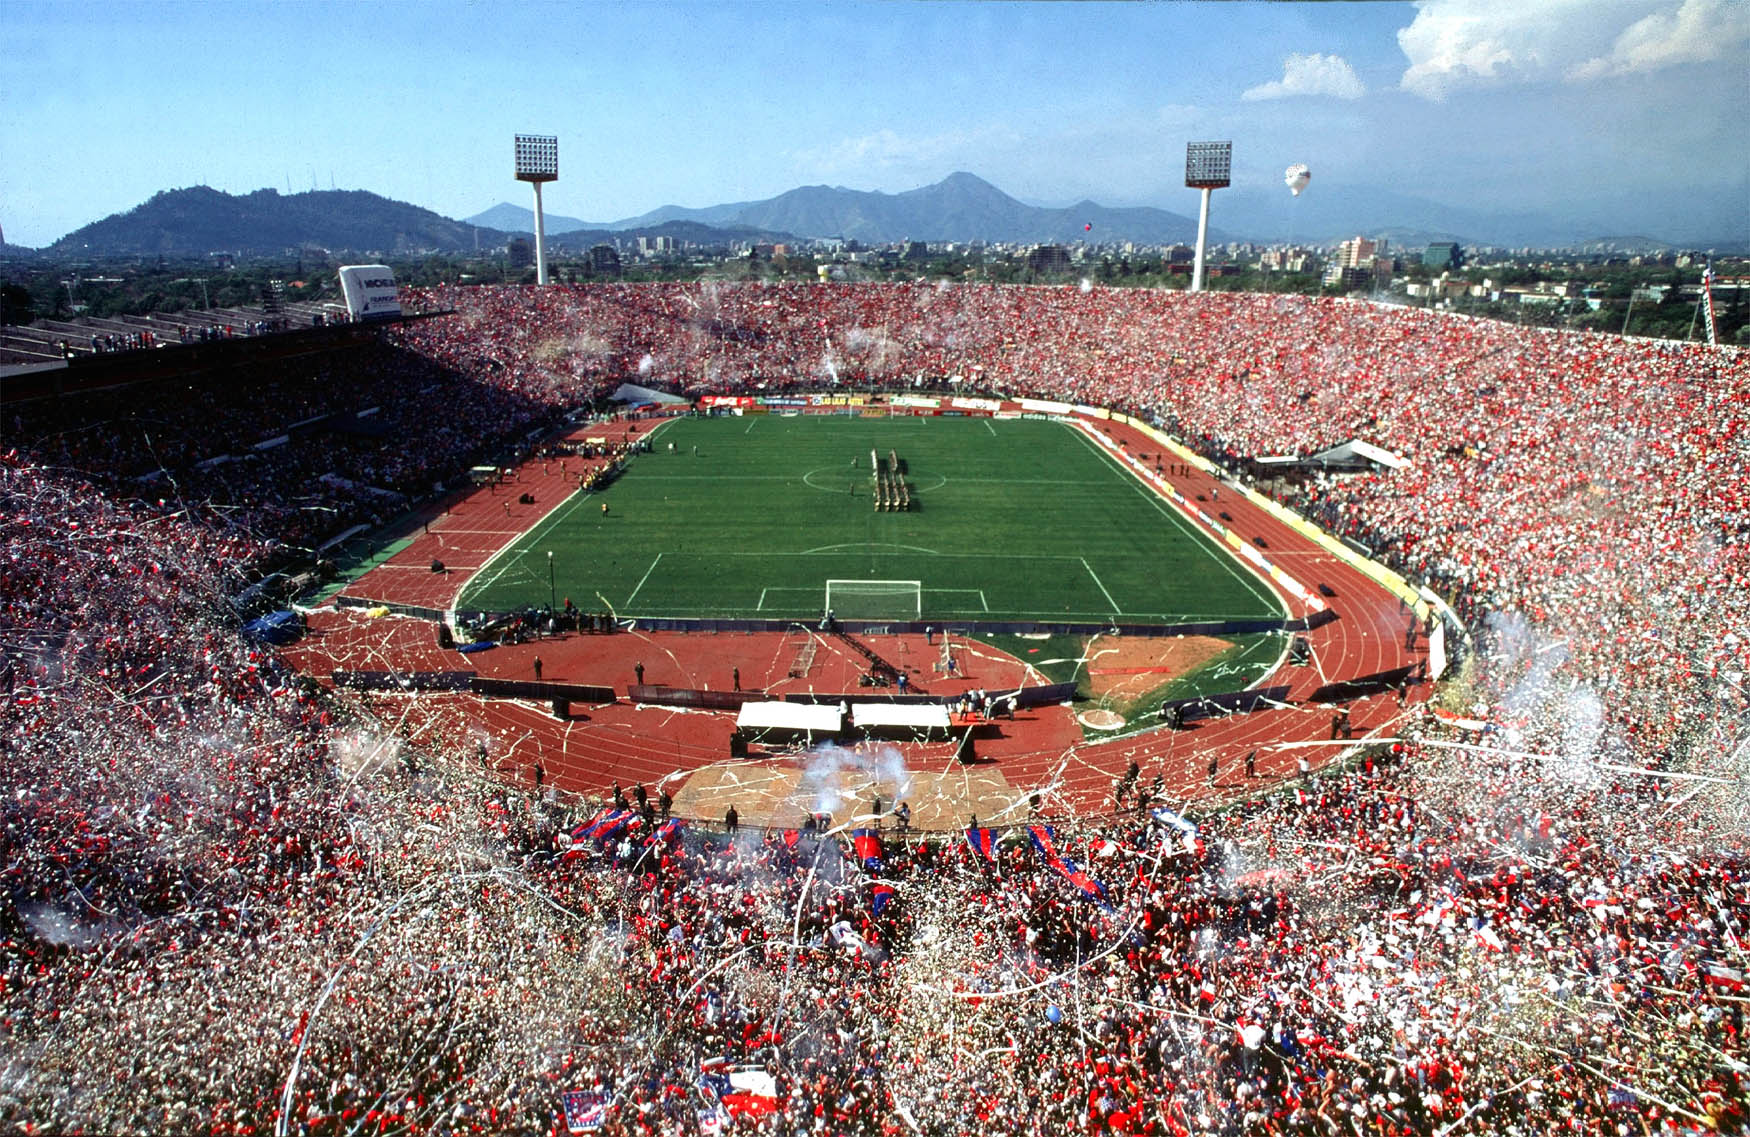 File:Estadio Nacional de Chile 2.jpg - Wikimedia Commons